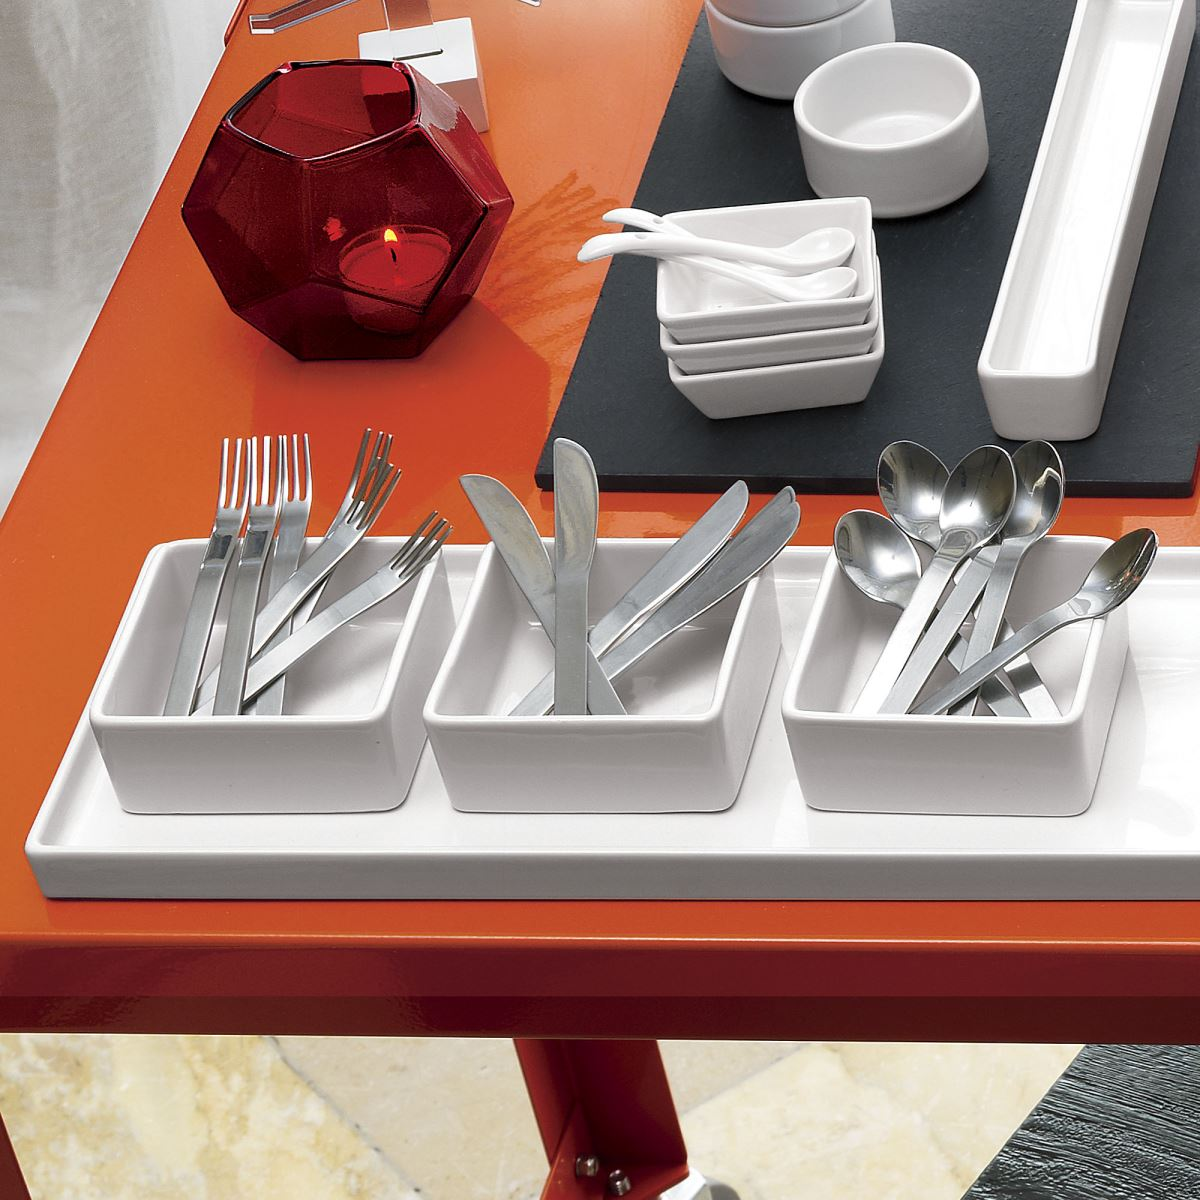 Mini cocktail serveware from CB2